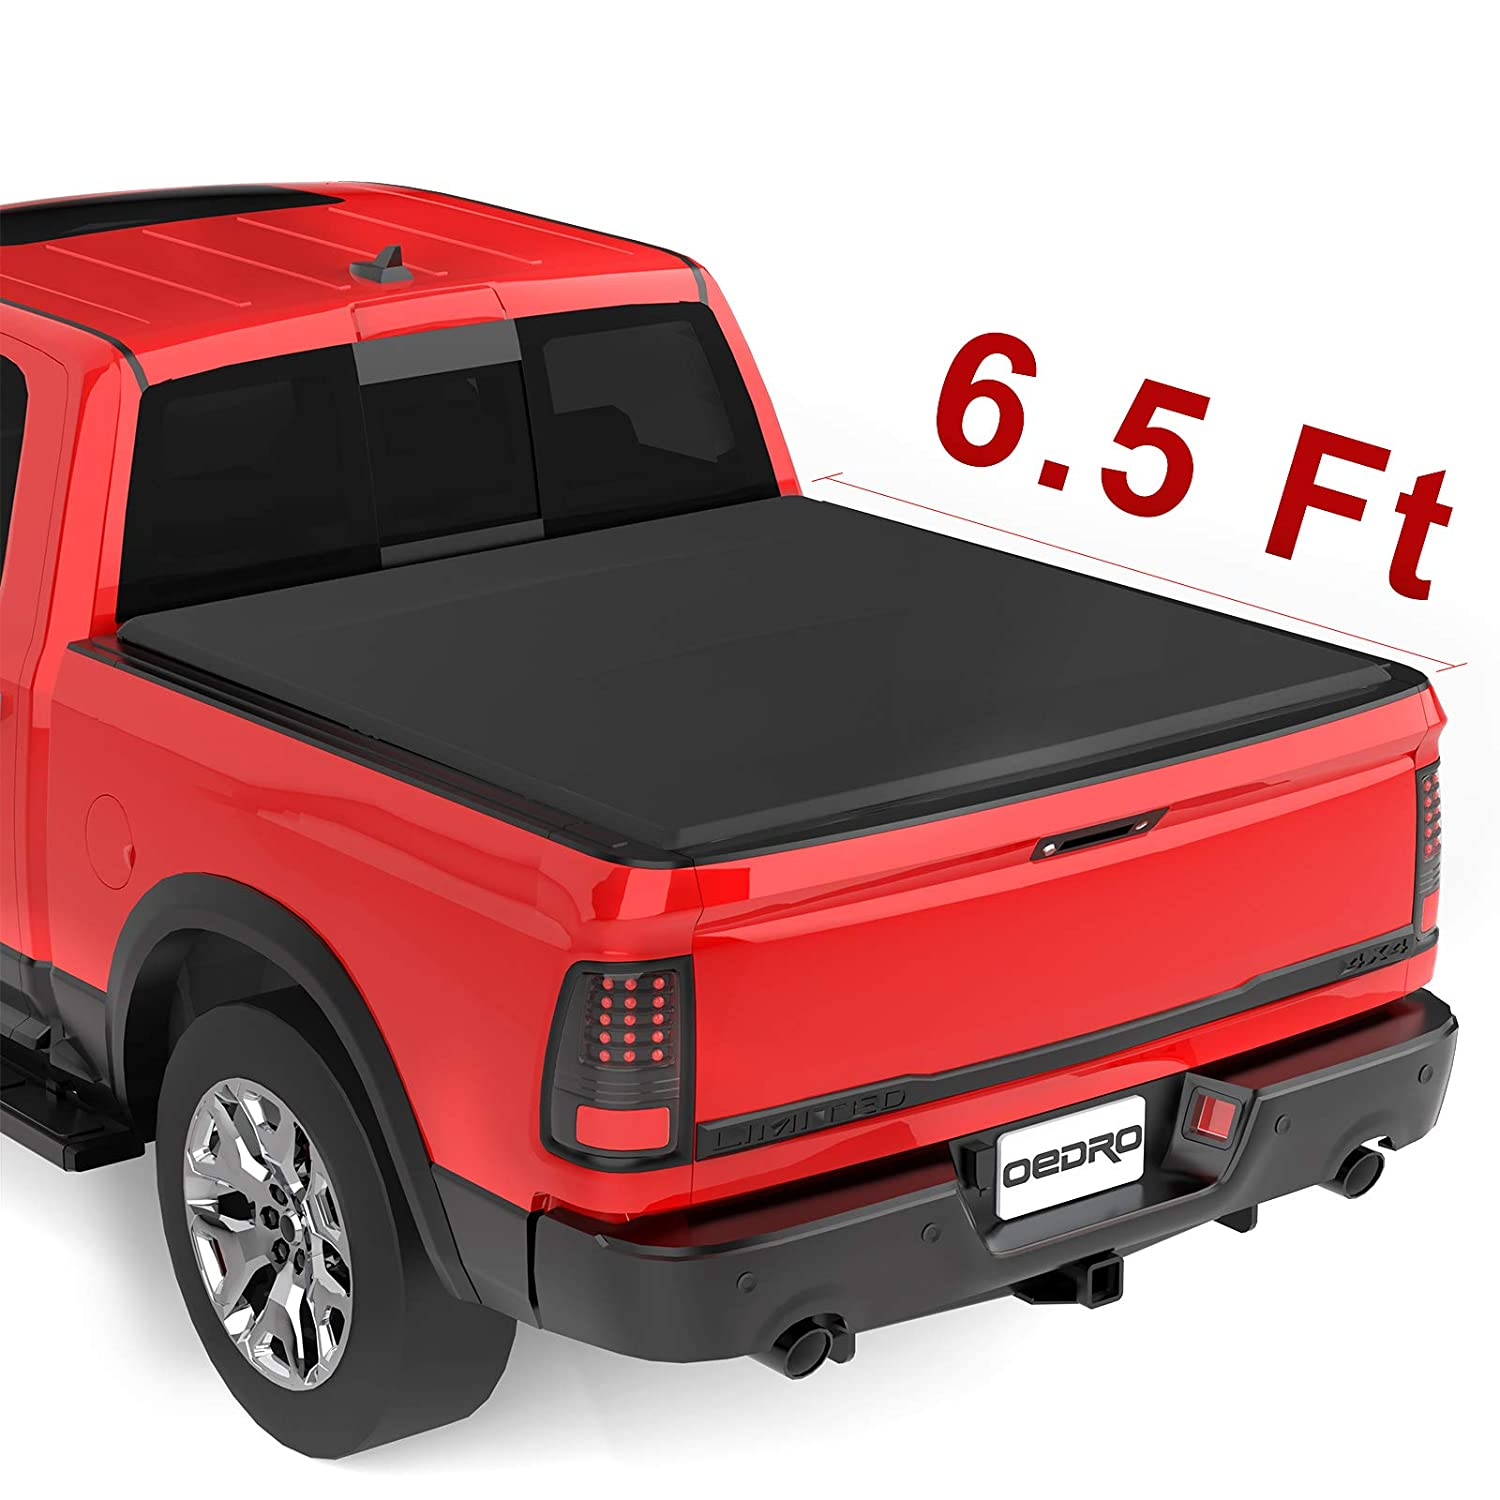 Oedro Upgraded Soft Tri Fold Truck Bed Tonneau Cover On Top Compatible For 2002 2019 Dodge Ram 1500 Only 2019 Classic 2003 2018 Dodge Ram 2500 3500 With 6 4ft Bed Fleetside Without Ram Box Automotive Dprd Tasikmalayakab Go Id